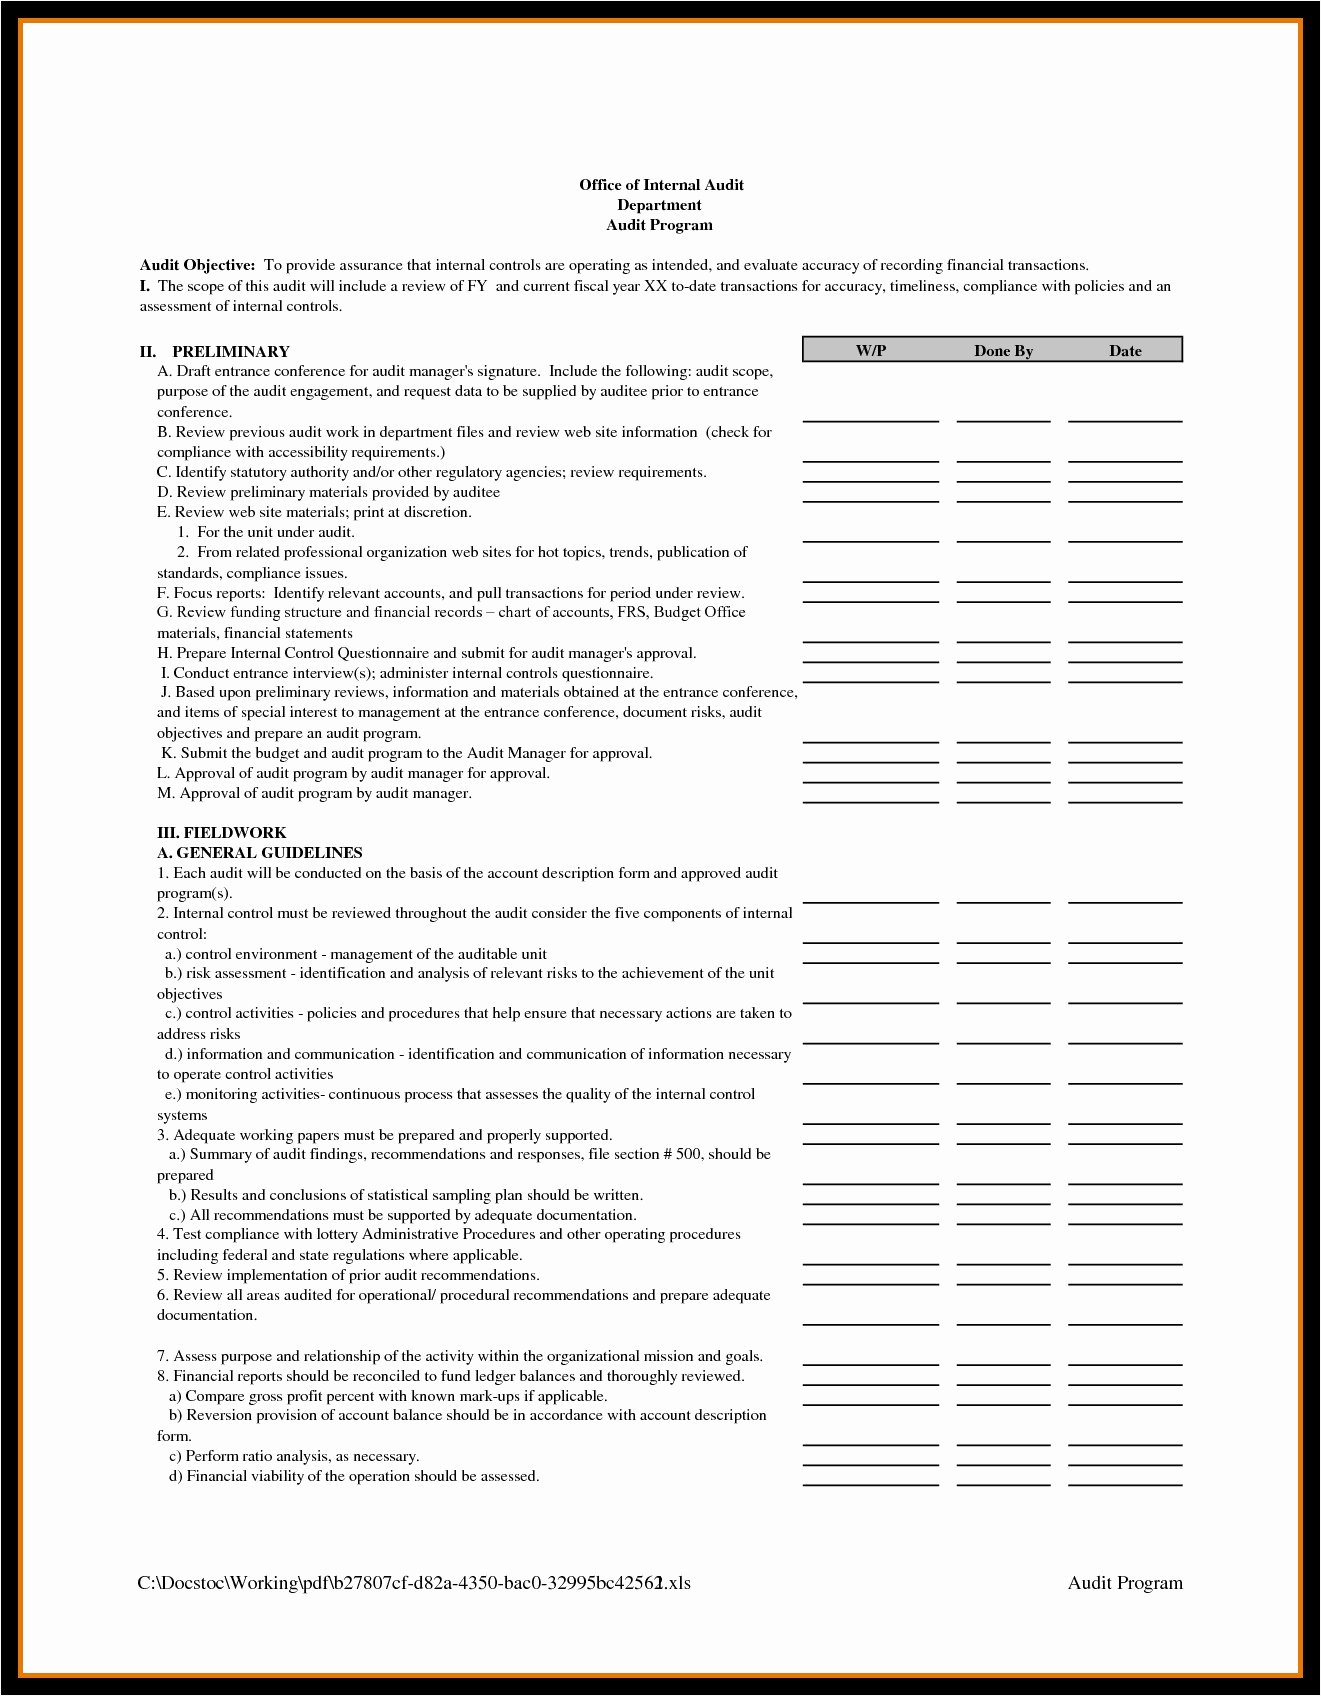 Findings Report Template Lovely Findings Report Sample Key Template Best Research